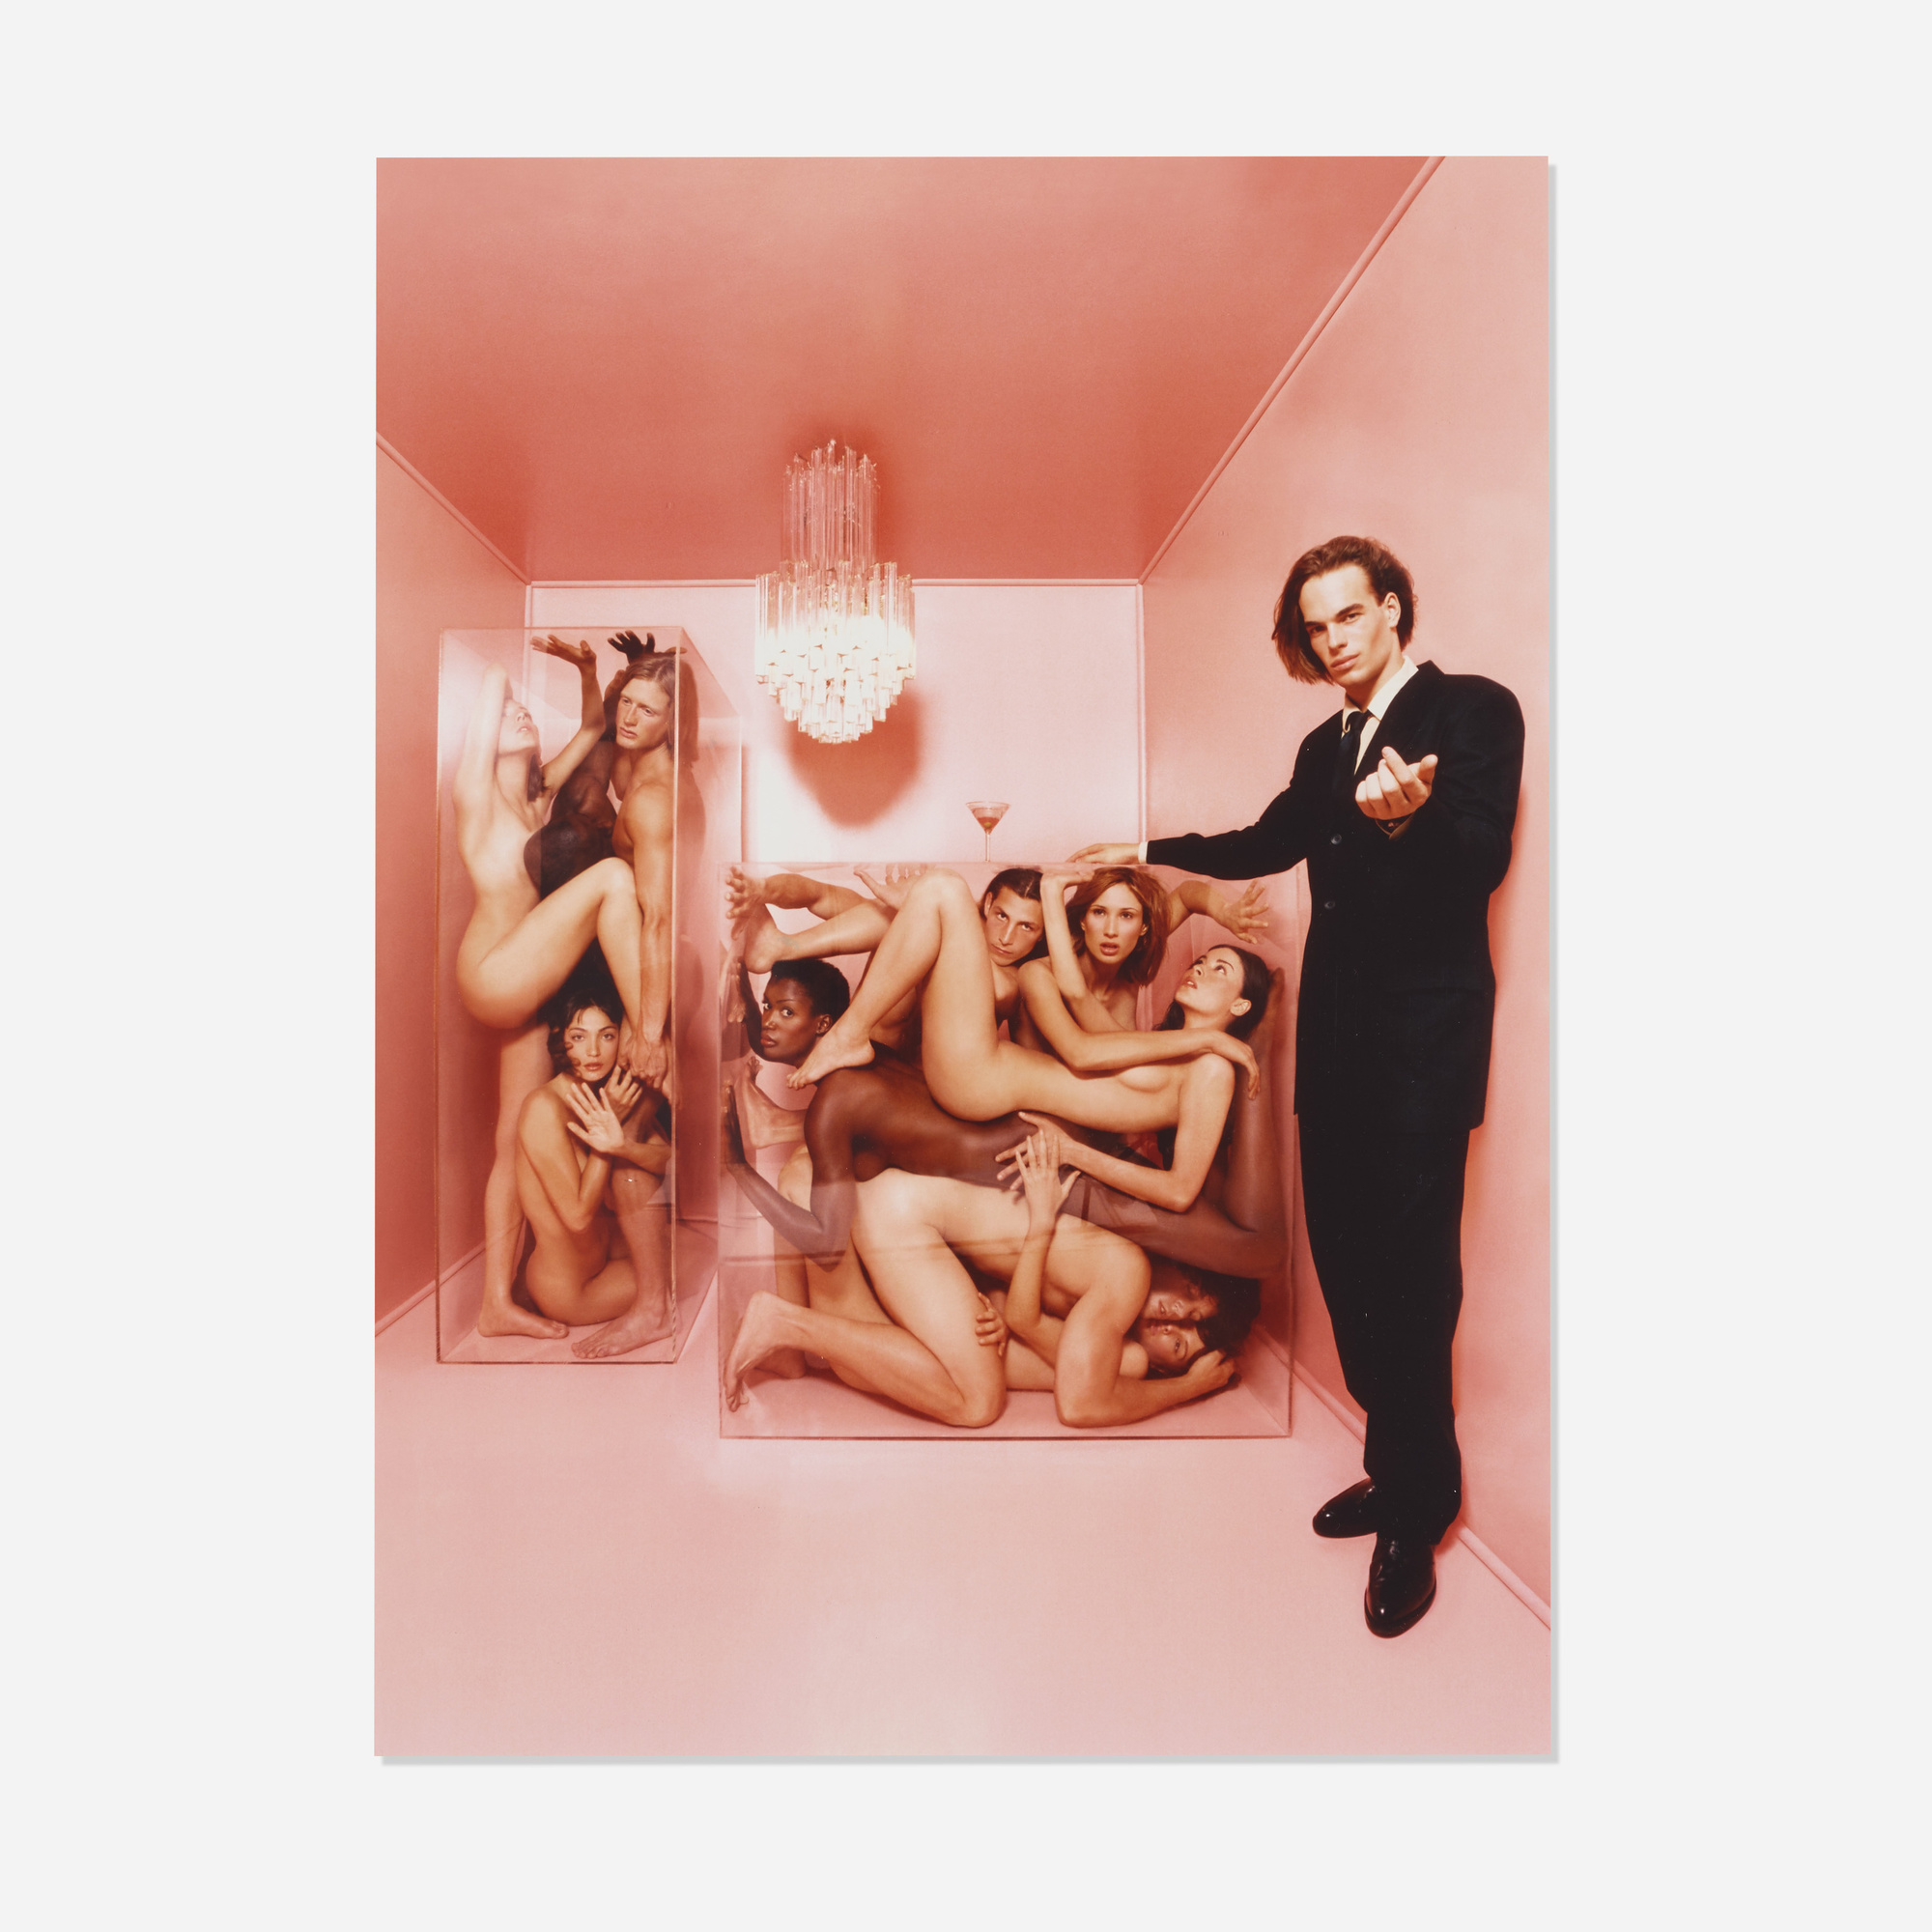 160: David LaChapelle / Joel West and Nudes in Plexiglas Boxes, New York (1 of 1)